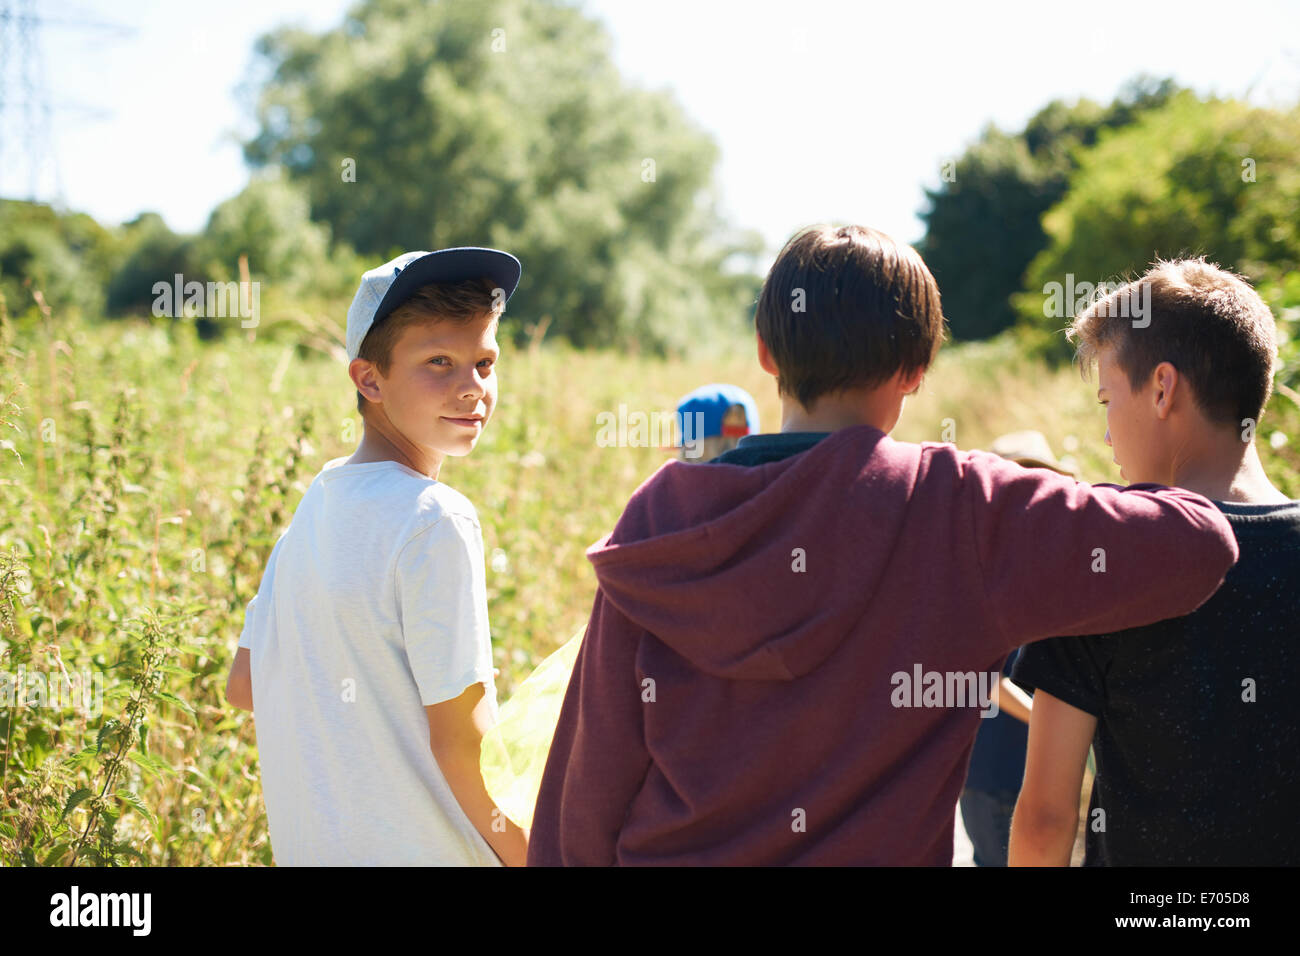 Portrait of boy wearing cap avec des amis Photo Stock